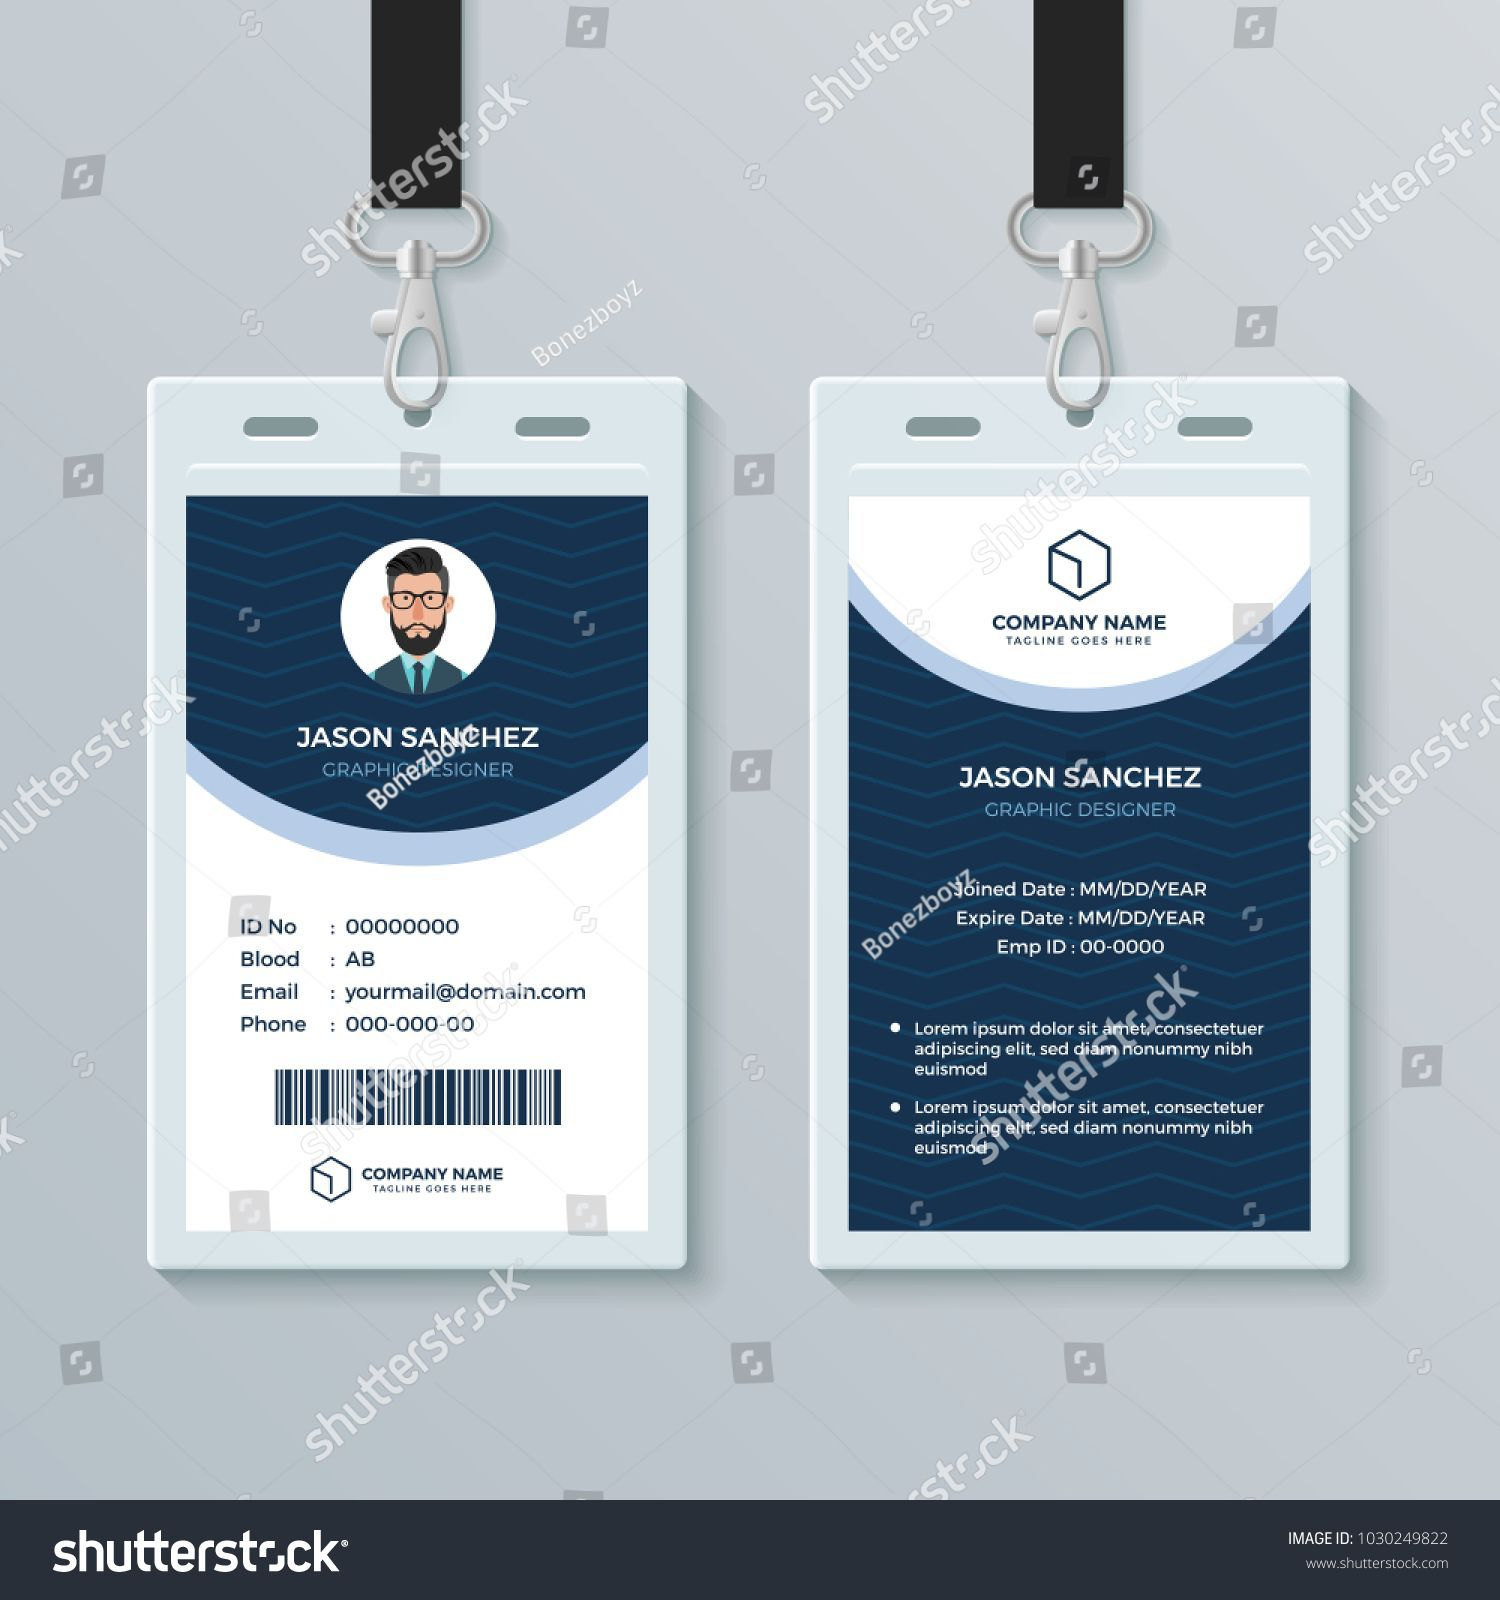 Clean And Modern Employee Id Card Design Template Employee In Company Id Card Design Template Cumed Org Employee Id Card Id Card Template Card Design